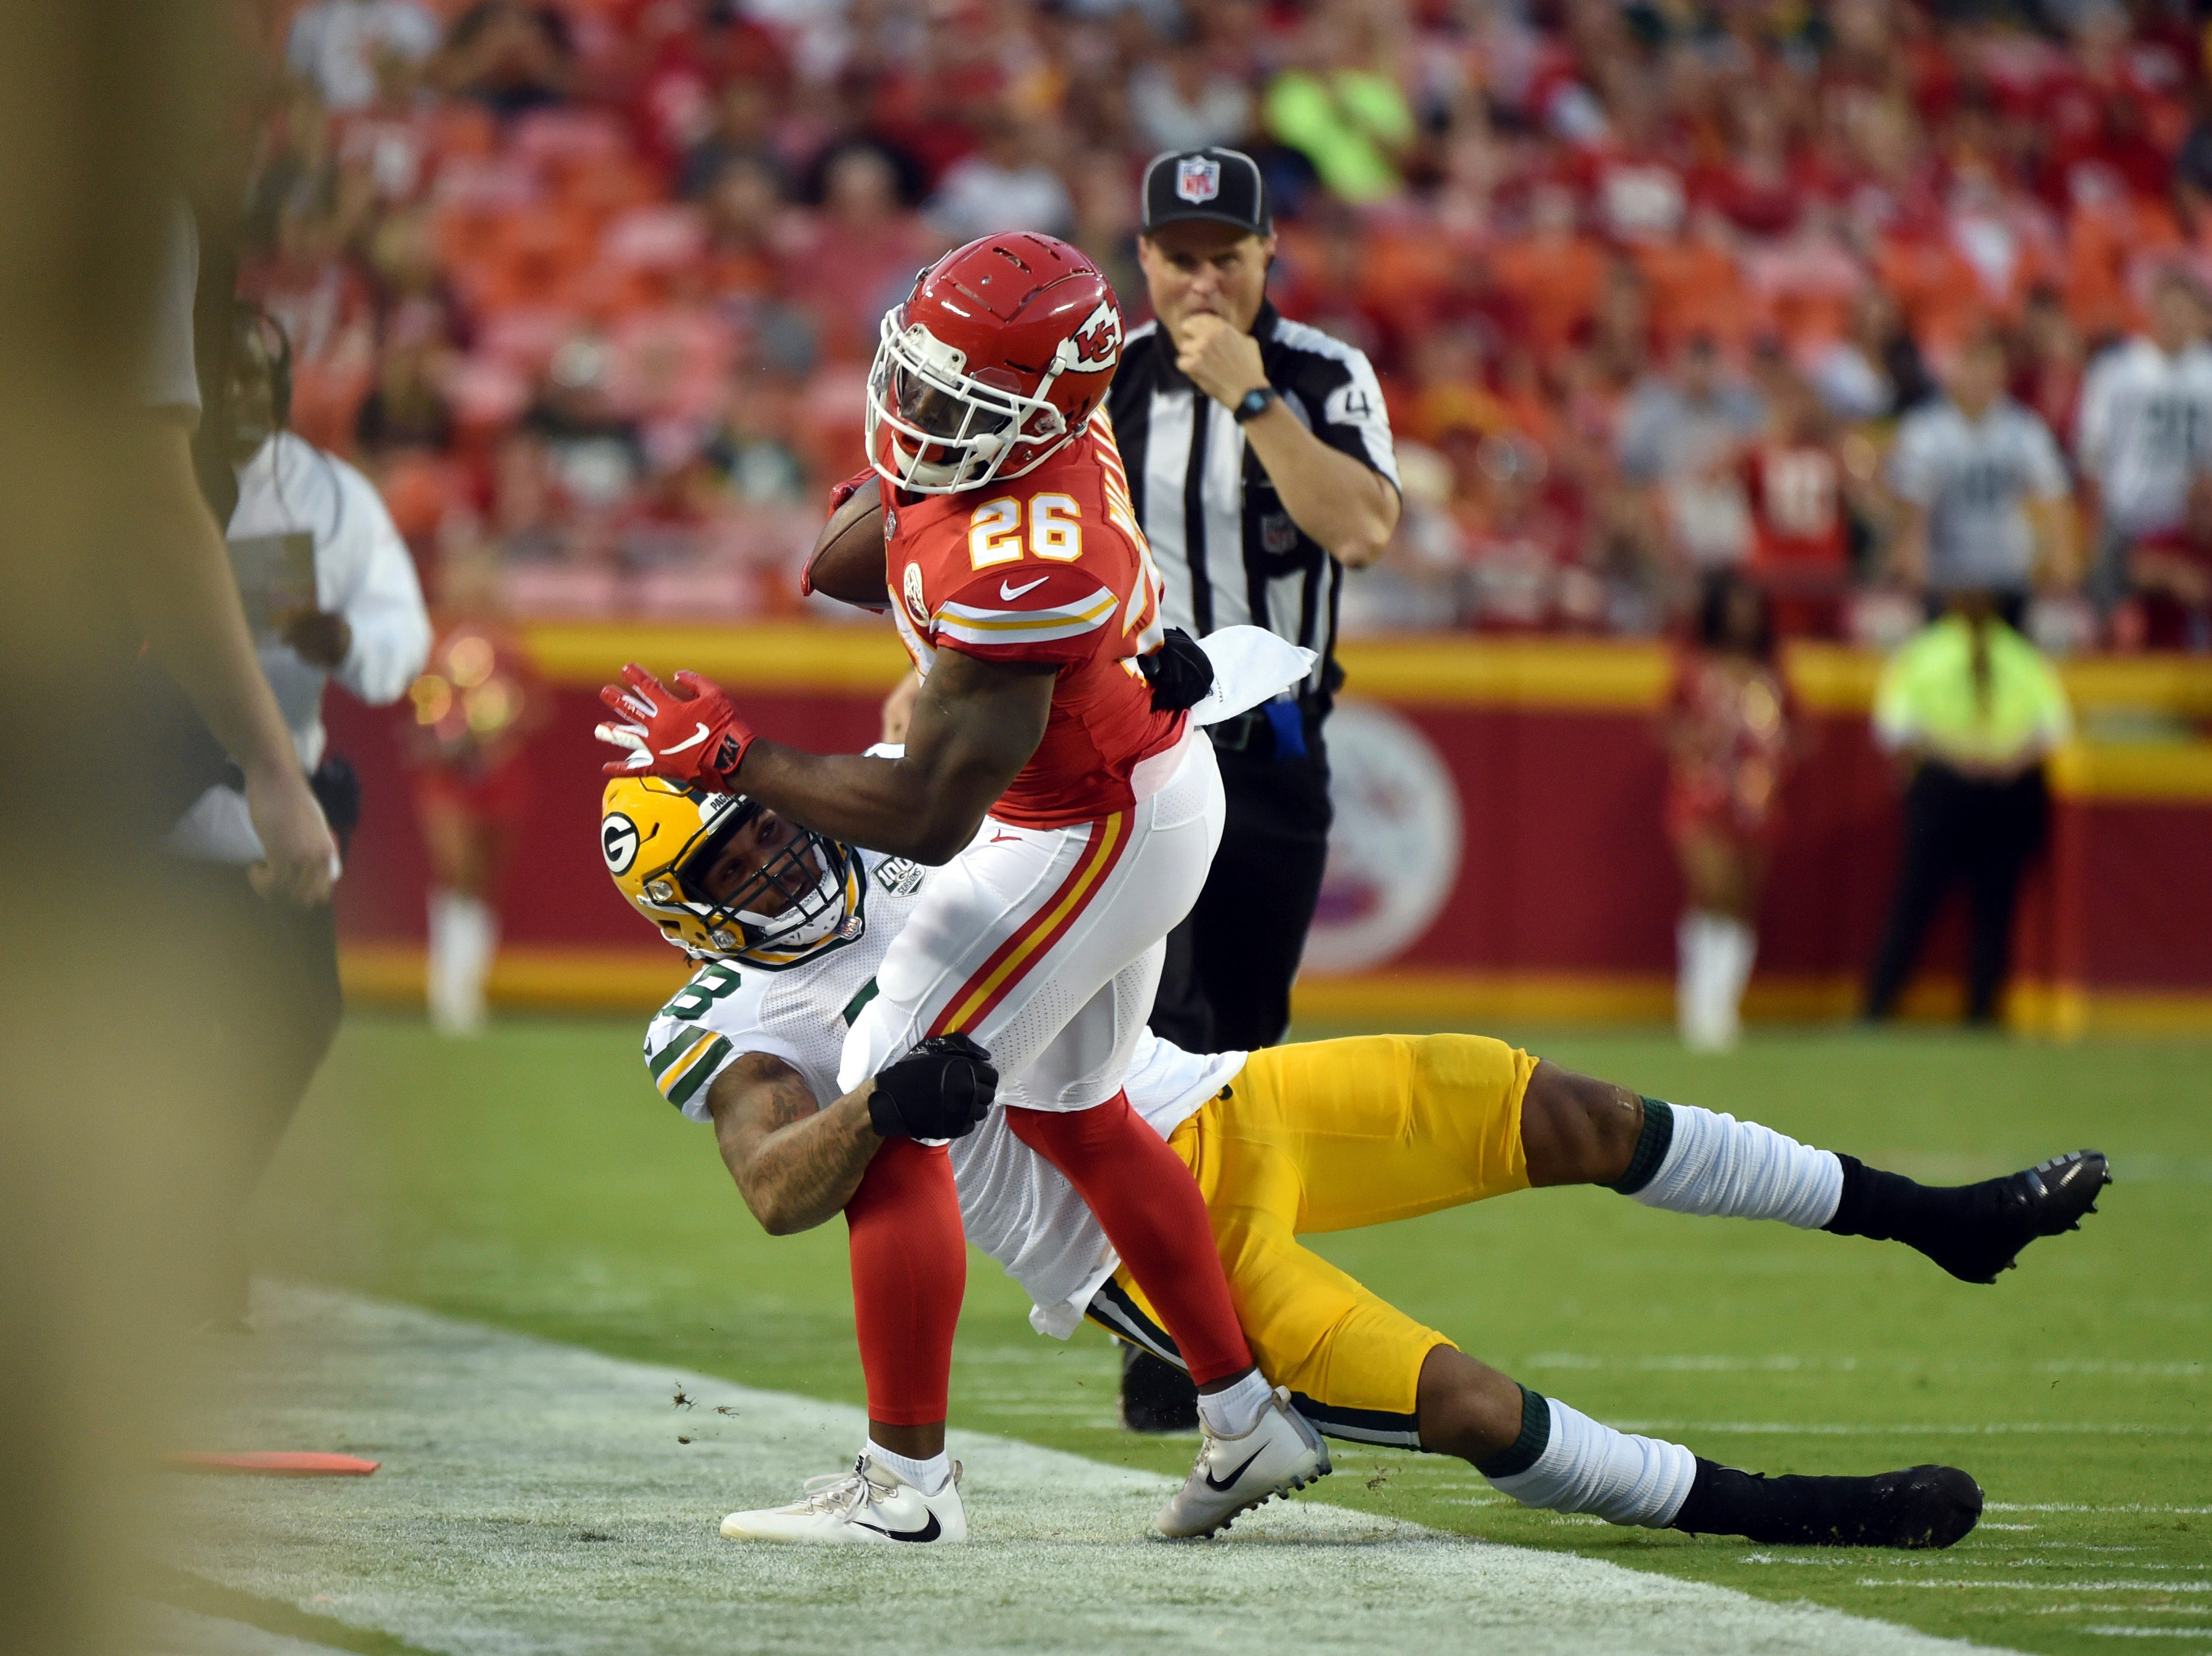 Kansas City Chiefs running back Damien Williams (26) is tackled by Green Bay Packers linebacker Antonio Morrison (48) during the first half of an NFL preseason football game in Kansas City, Mo., Thursday, Aug. 30, 2018.